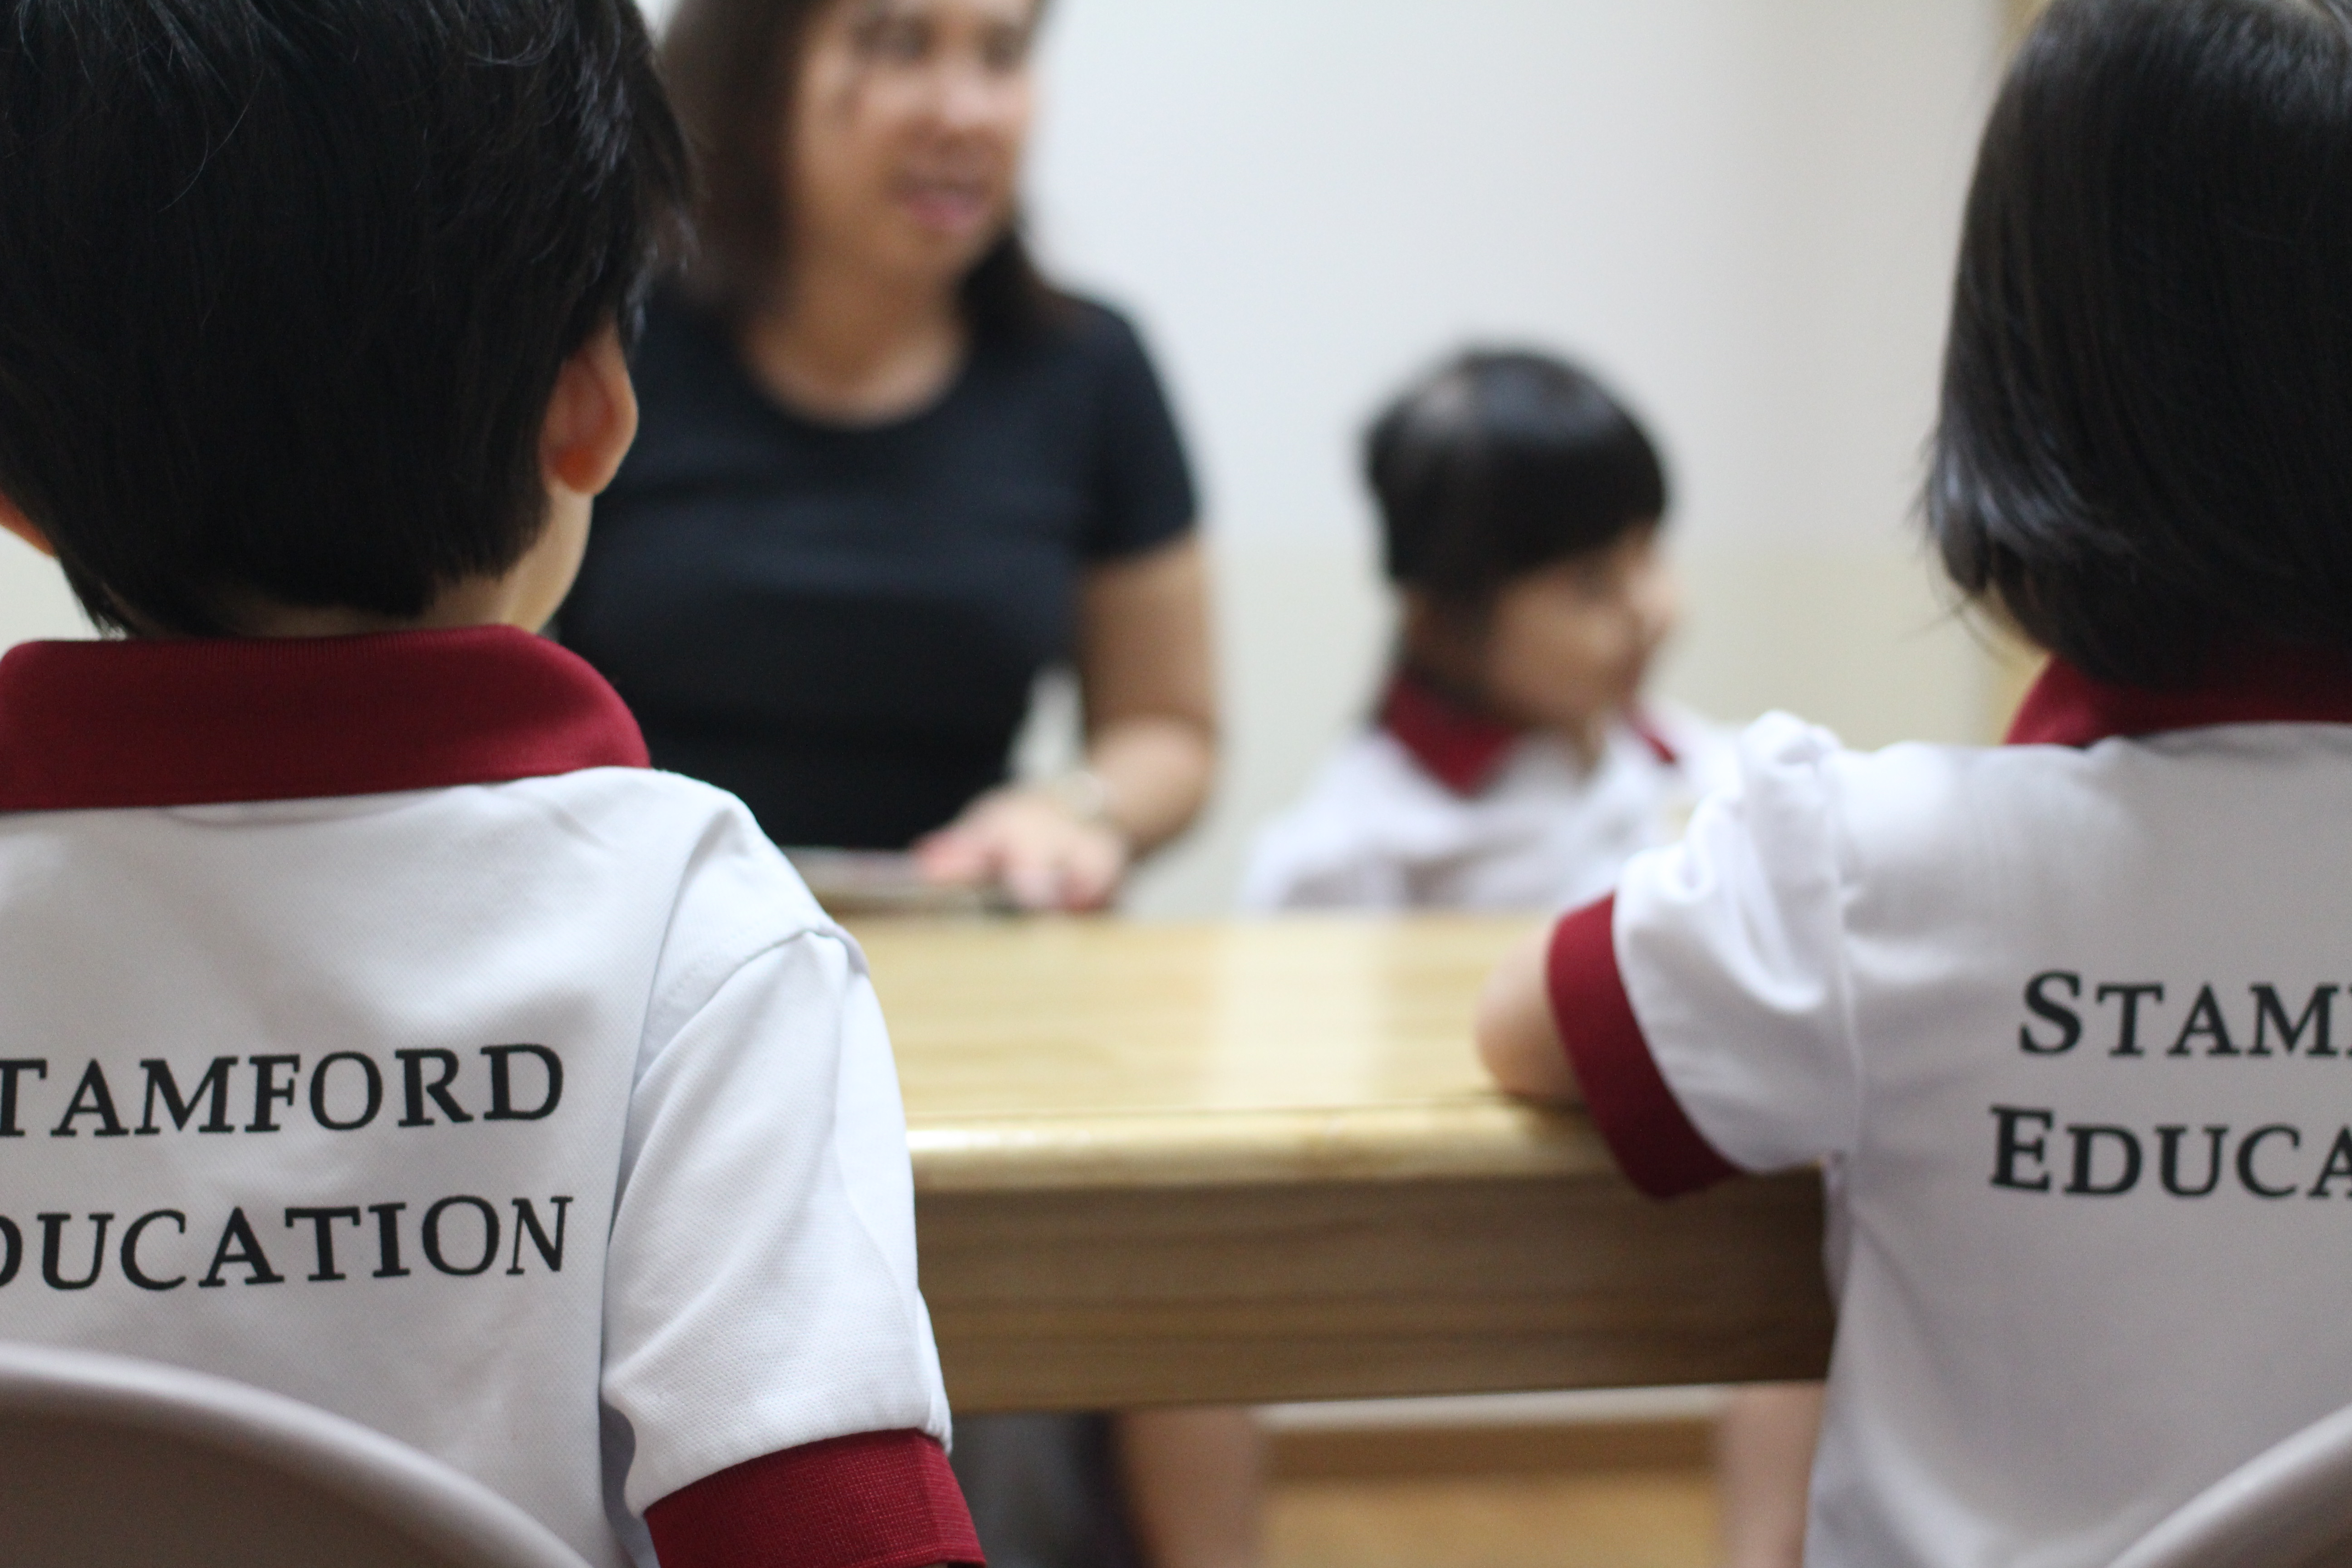 Stamford Education Childcare